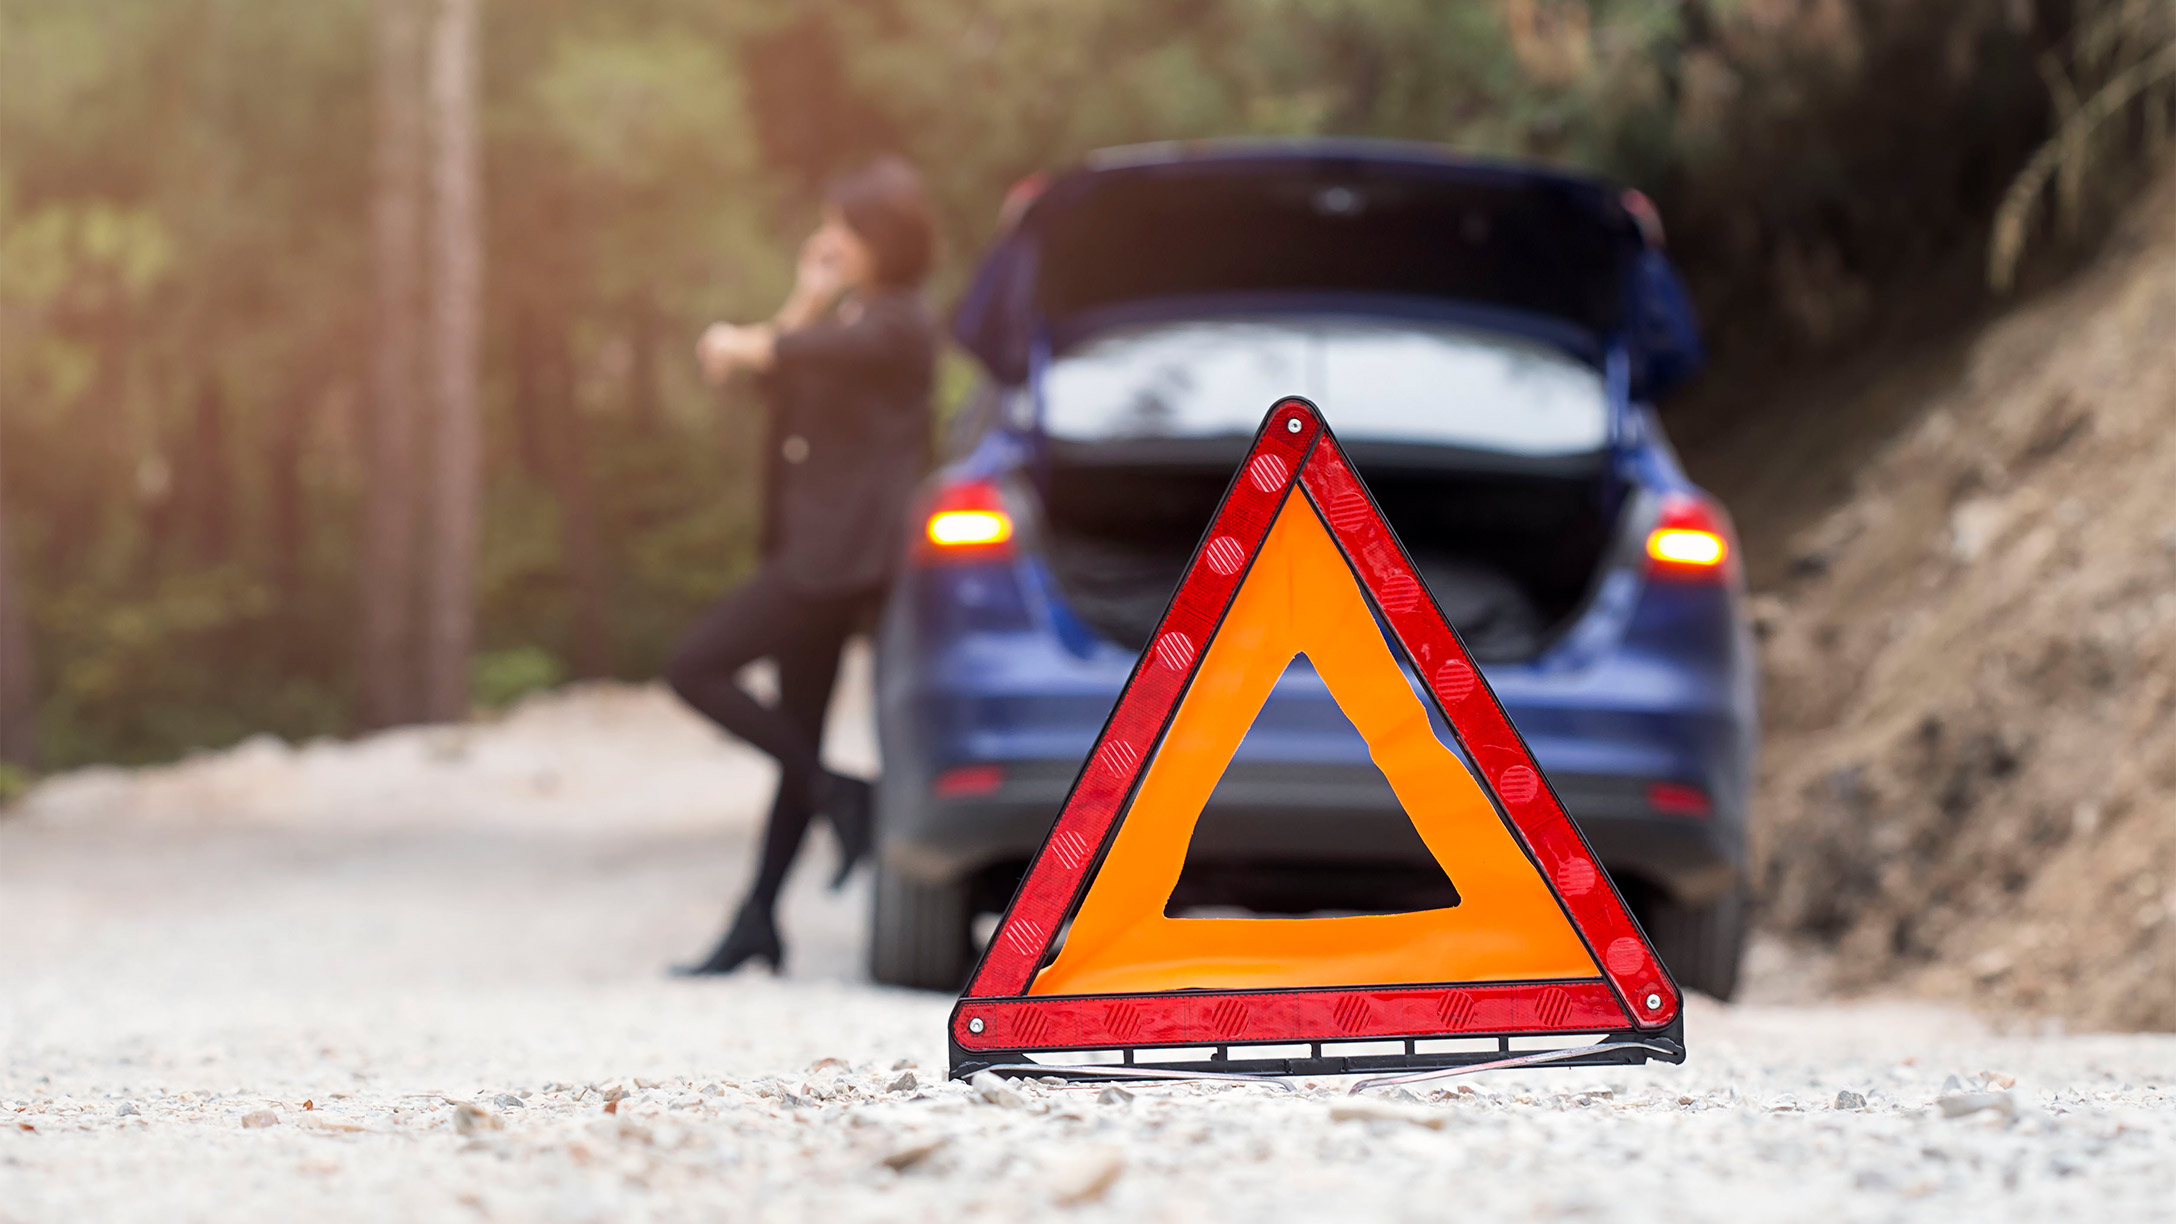 A woman standing against a broken down vehicle with a warning cone in the foreground